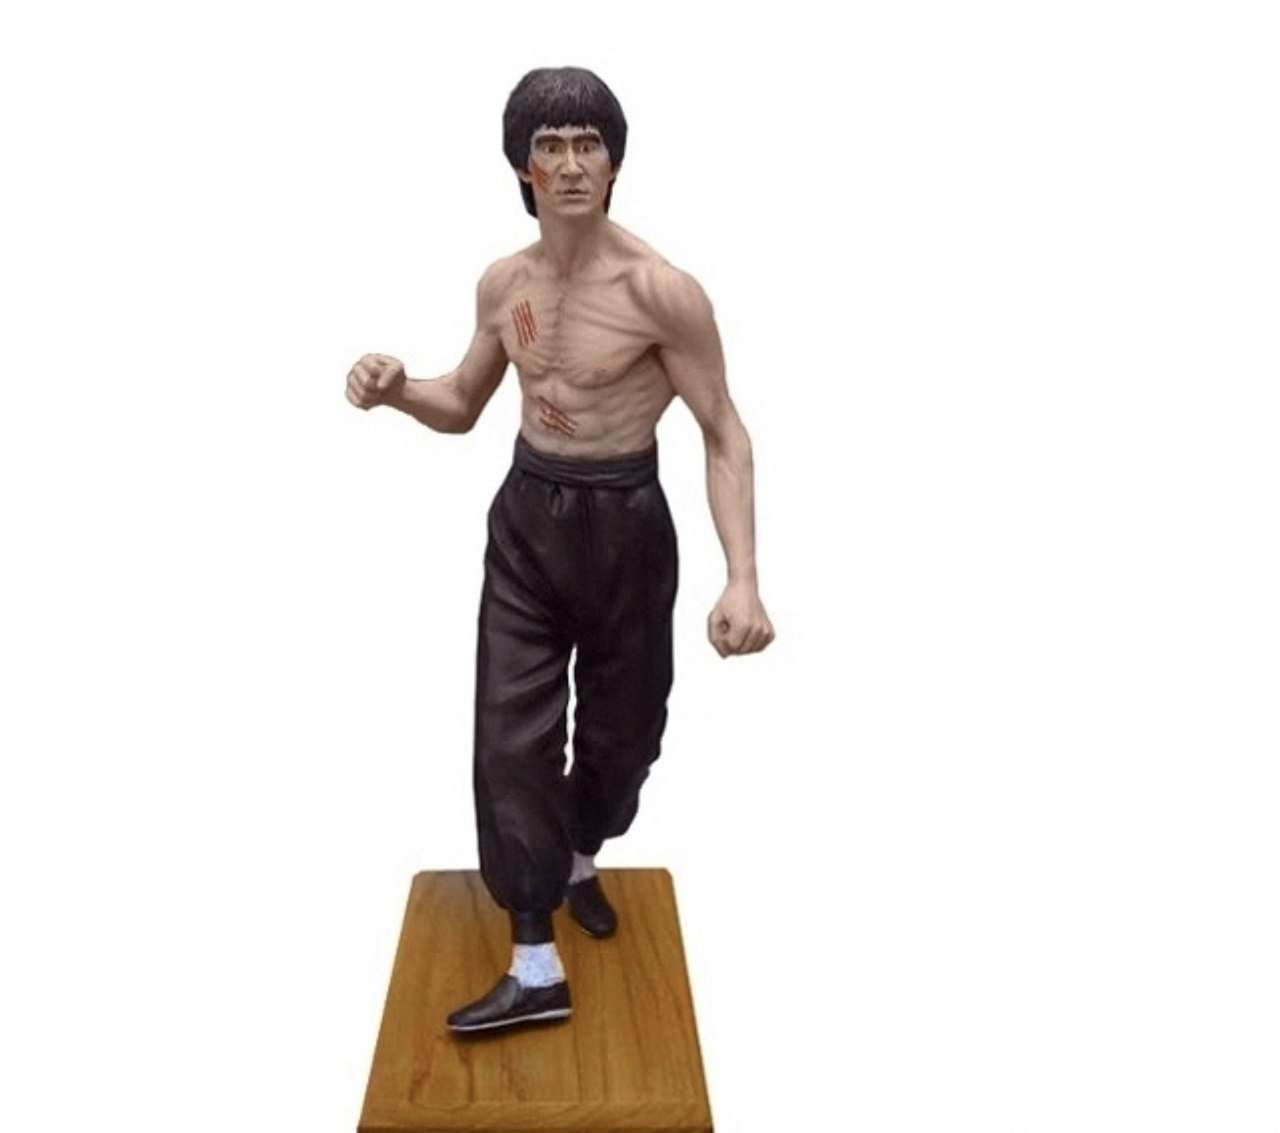 Celebrity Lee Kung Fu Life Size Movie Hollywood Prop Decor Statue - LM Treasures